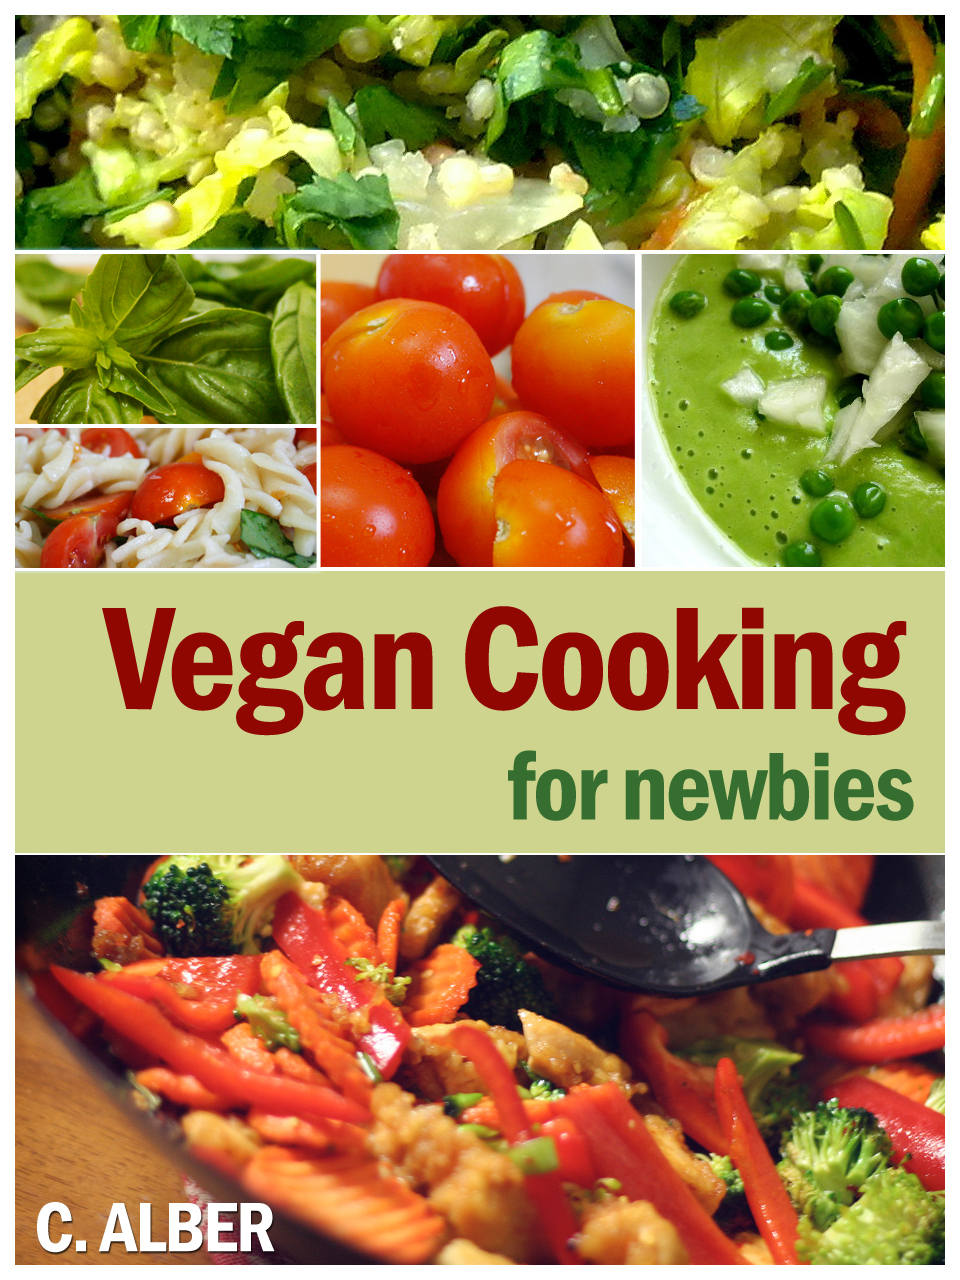 Vegan Cooking for Newbies